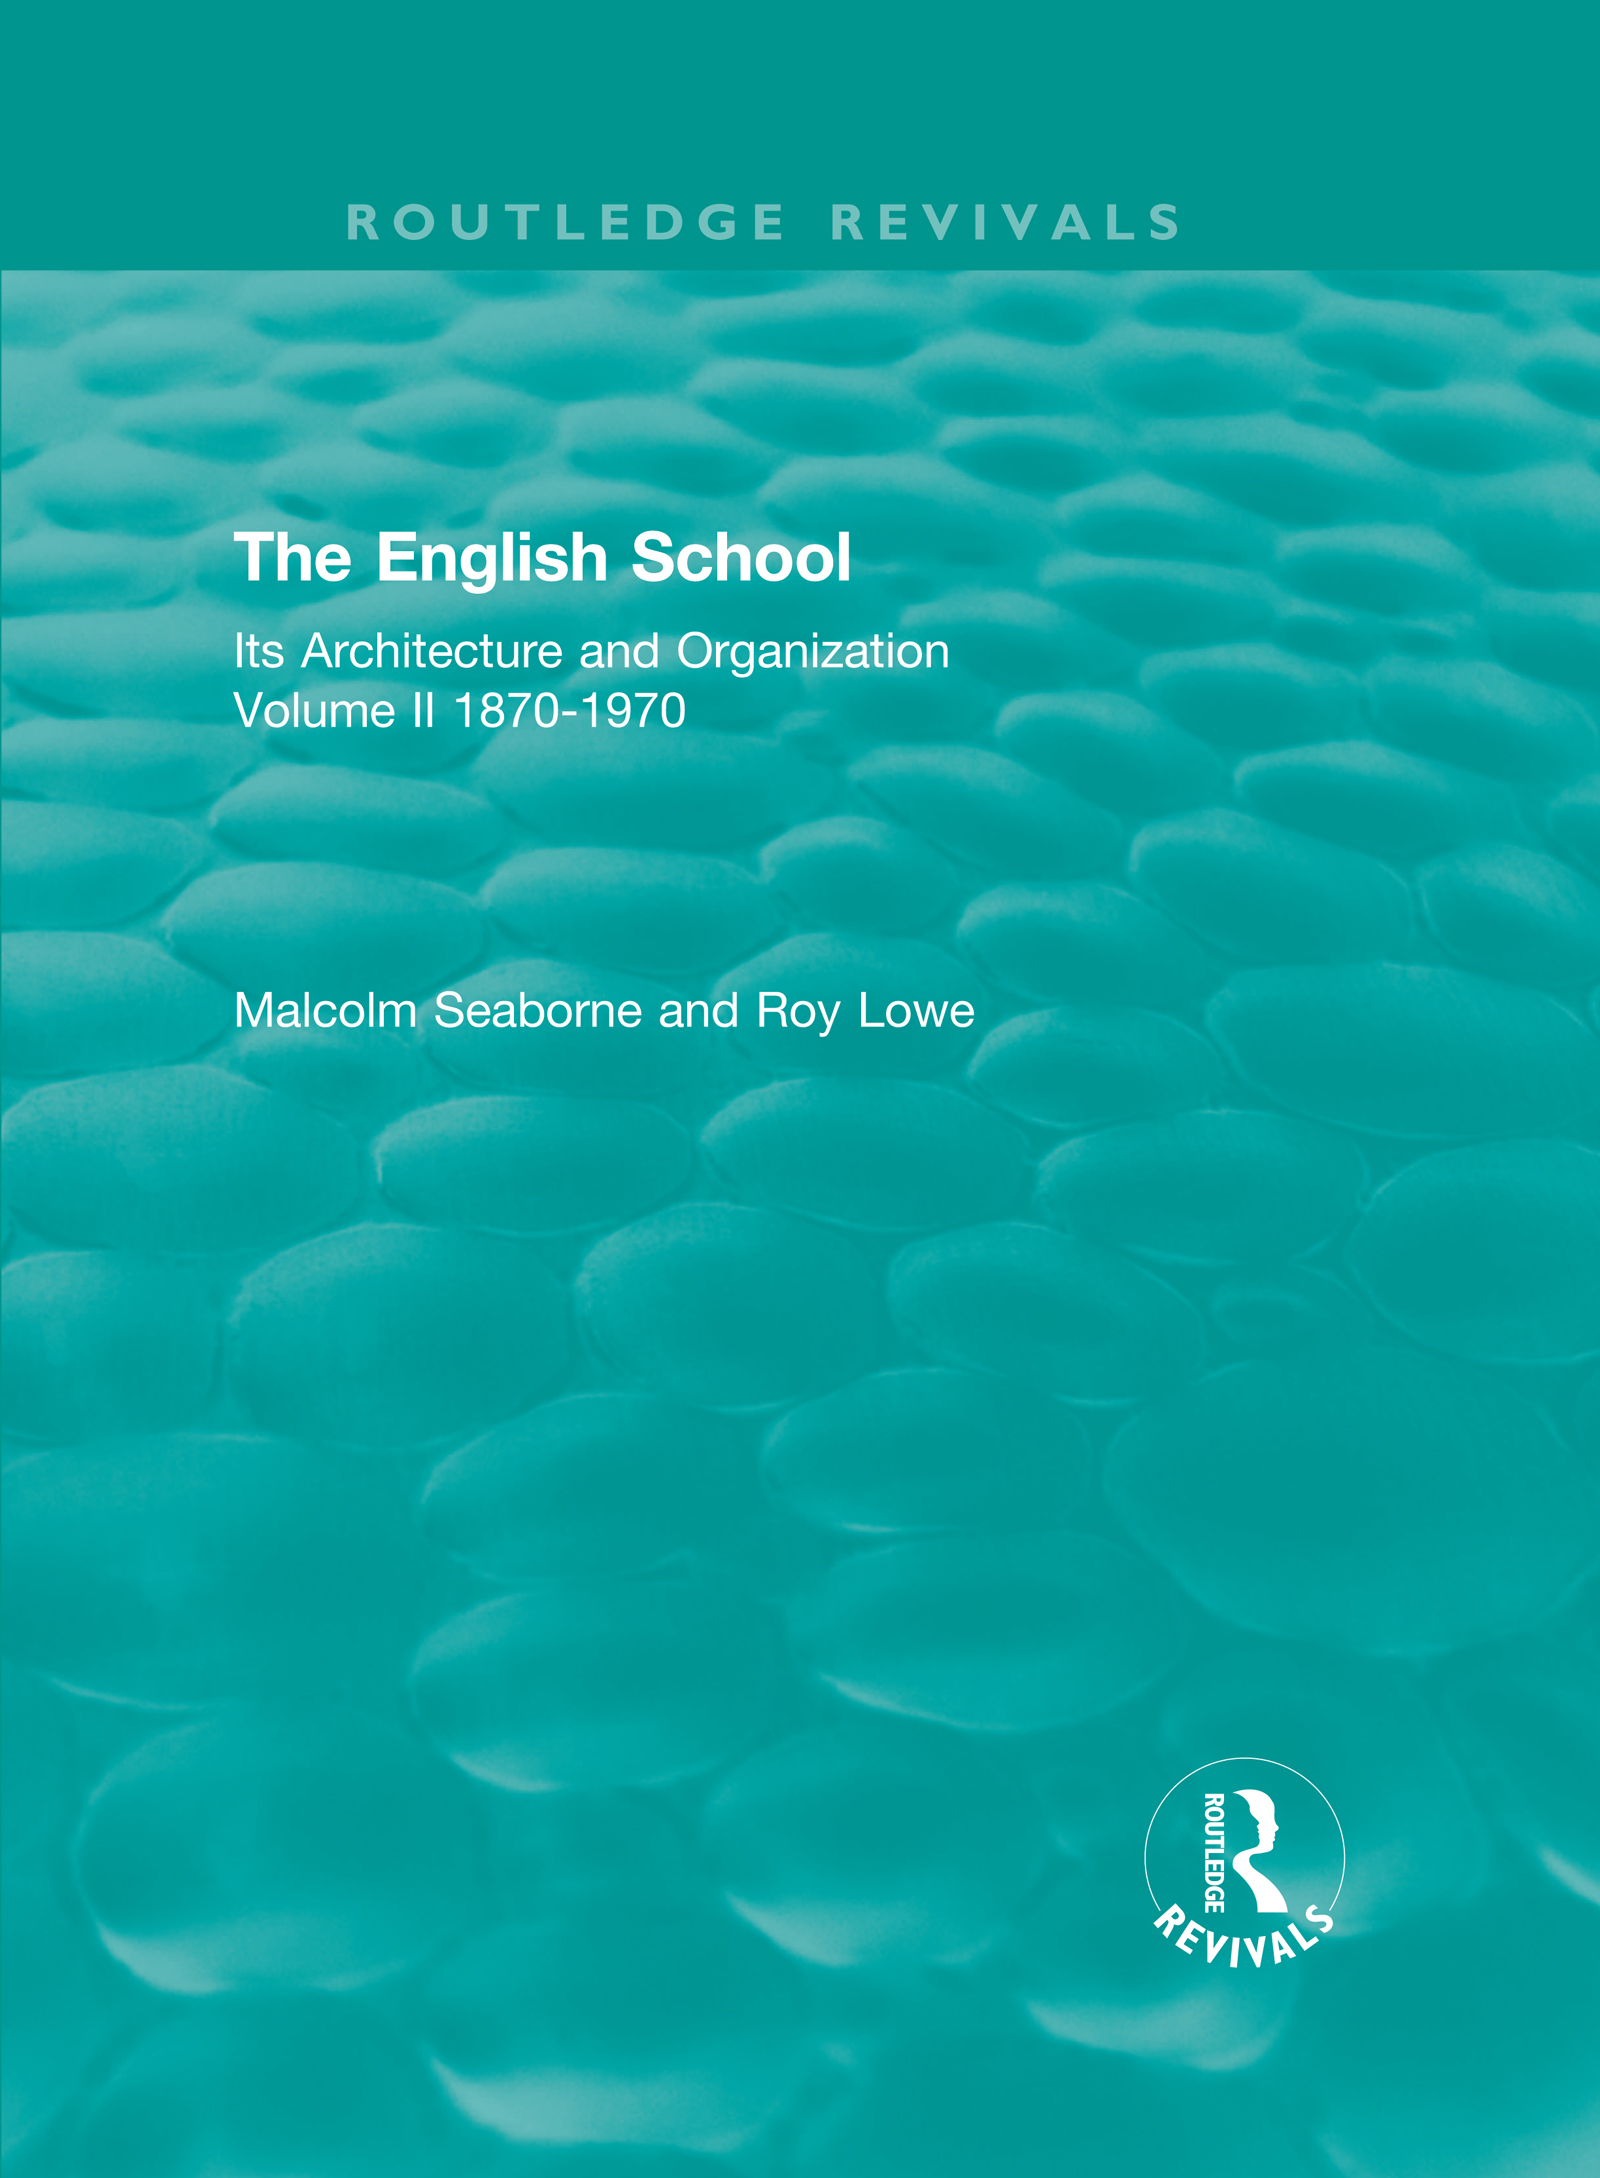 The English School: Its Architecture and Organization, Volume II 1870-1970 book cover